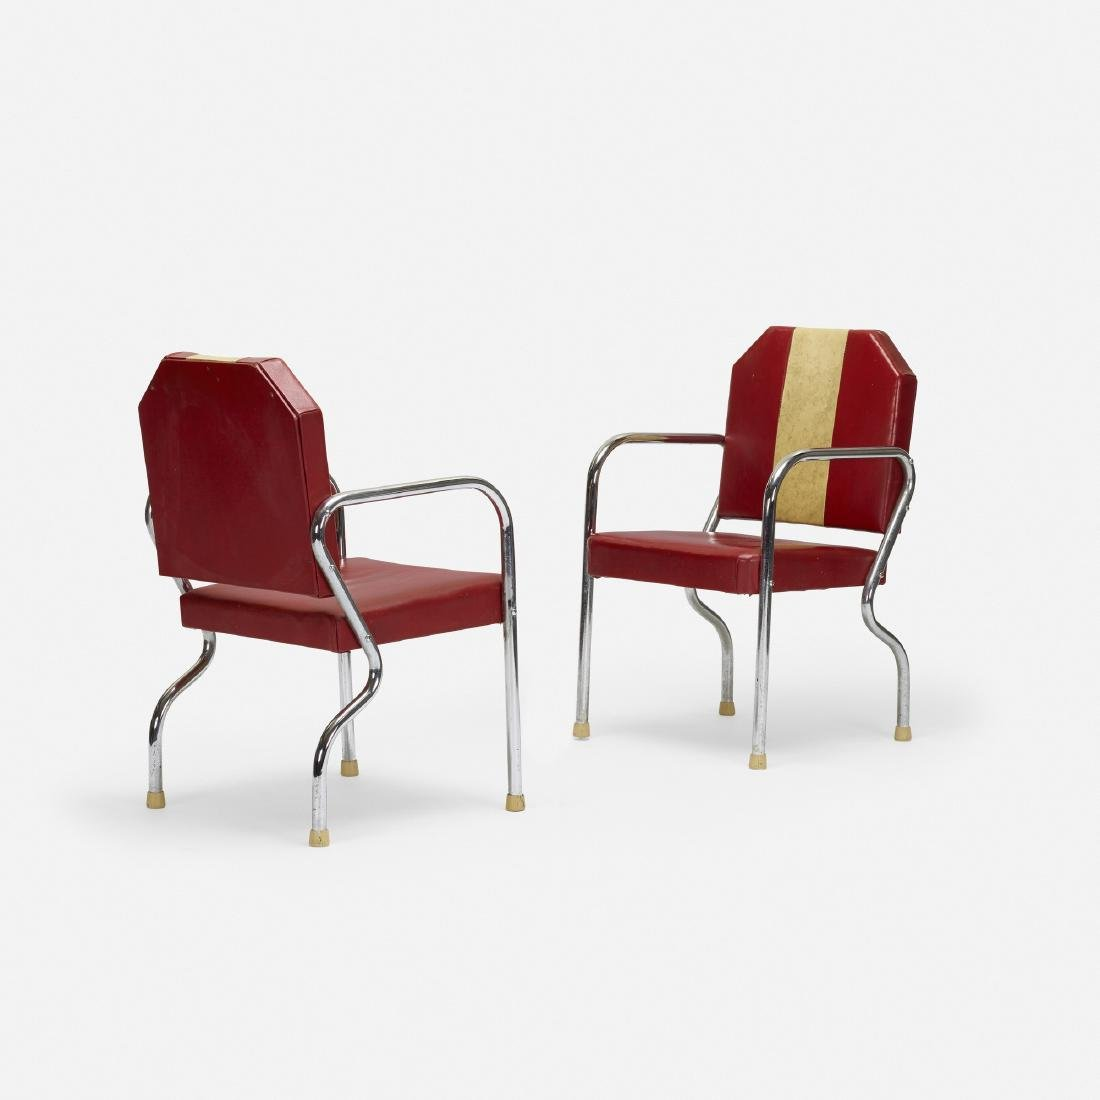 American, chairs from the studio of Basquiat - 2